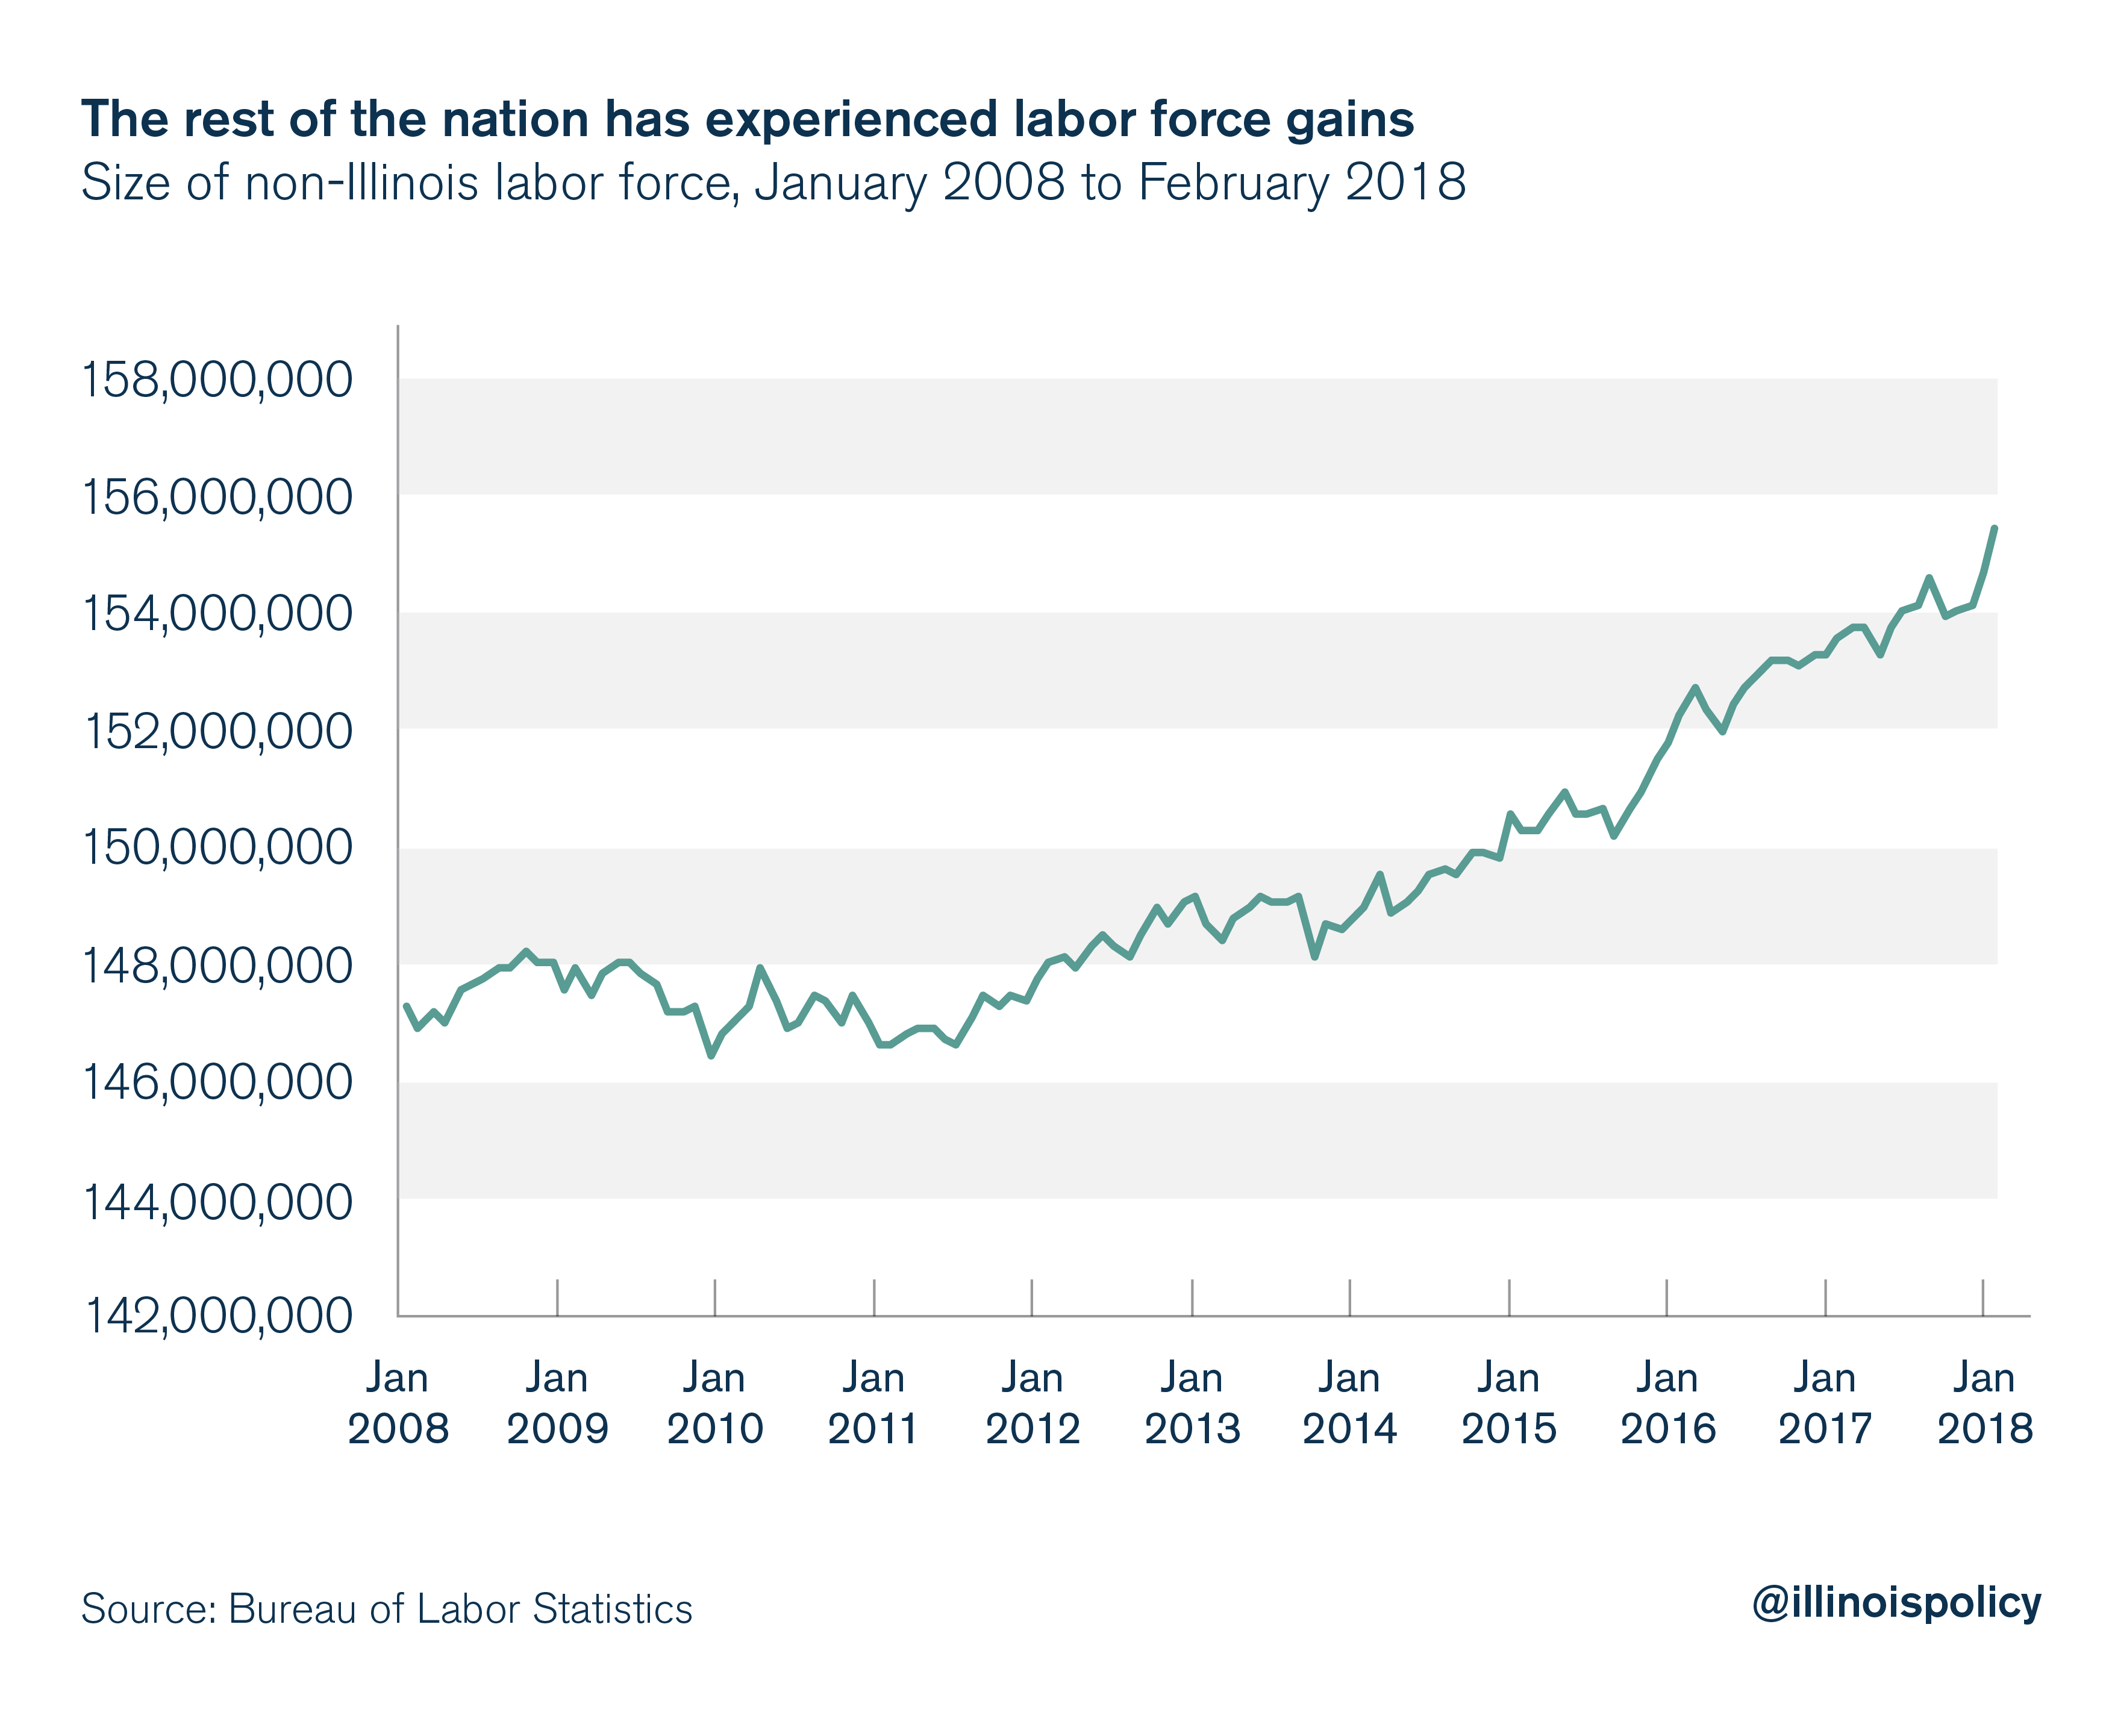 The rest of the nation has experienced labor force gains